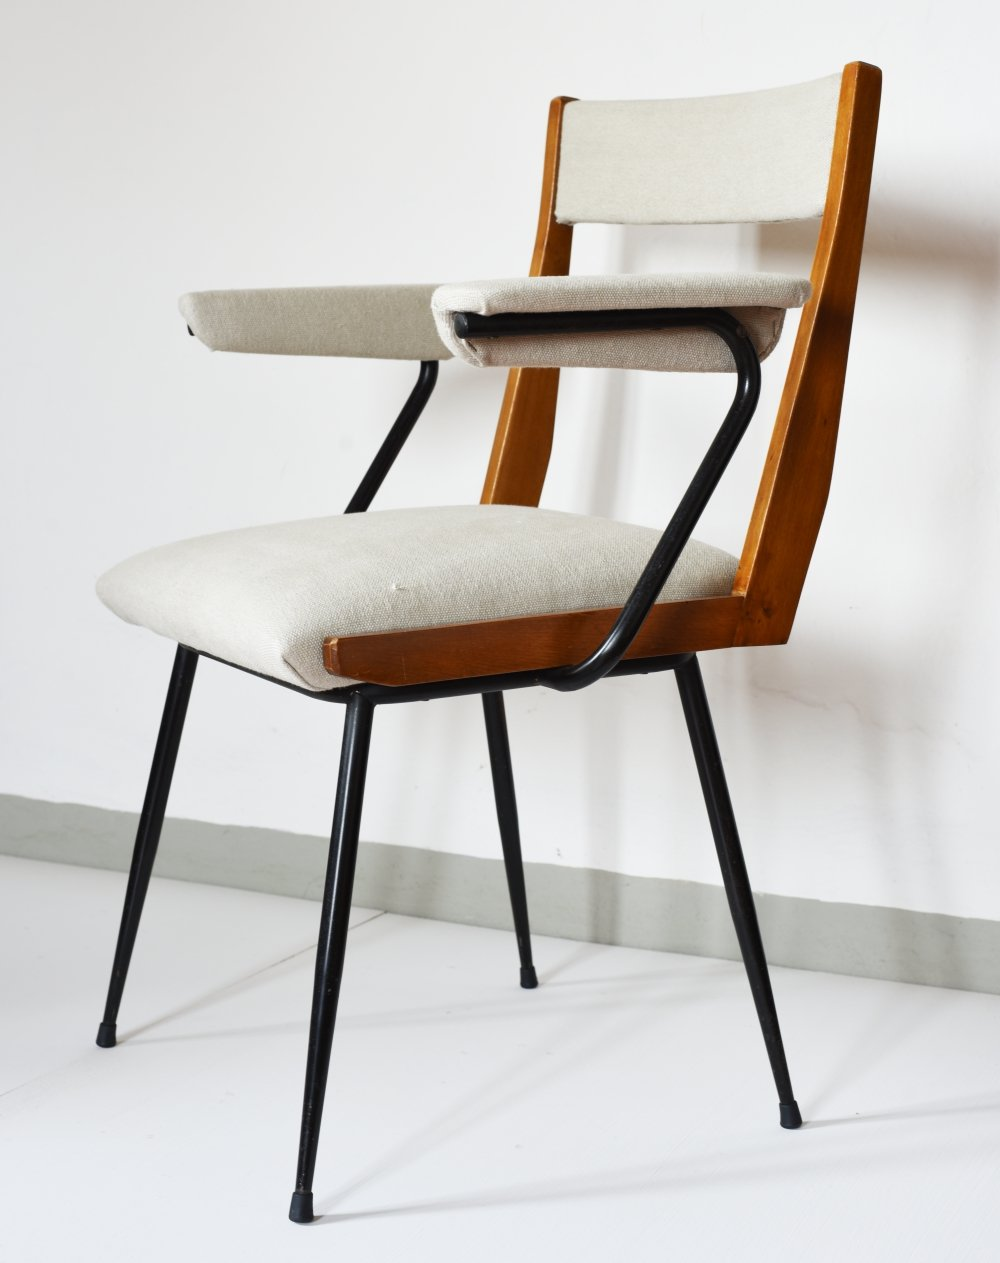 Rare Italian design chair, 1950s